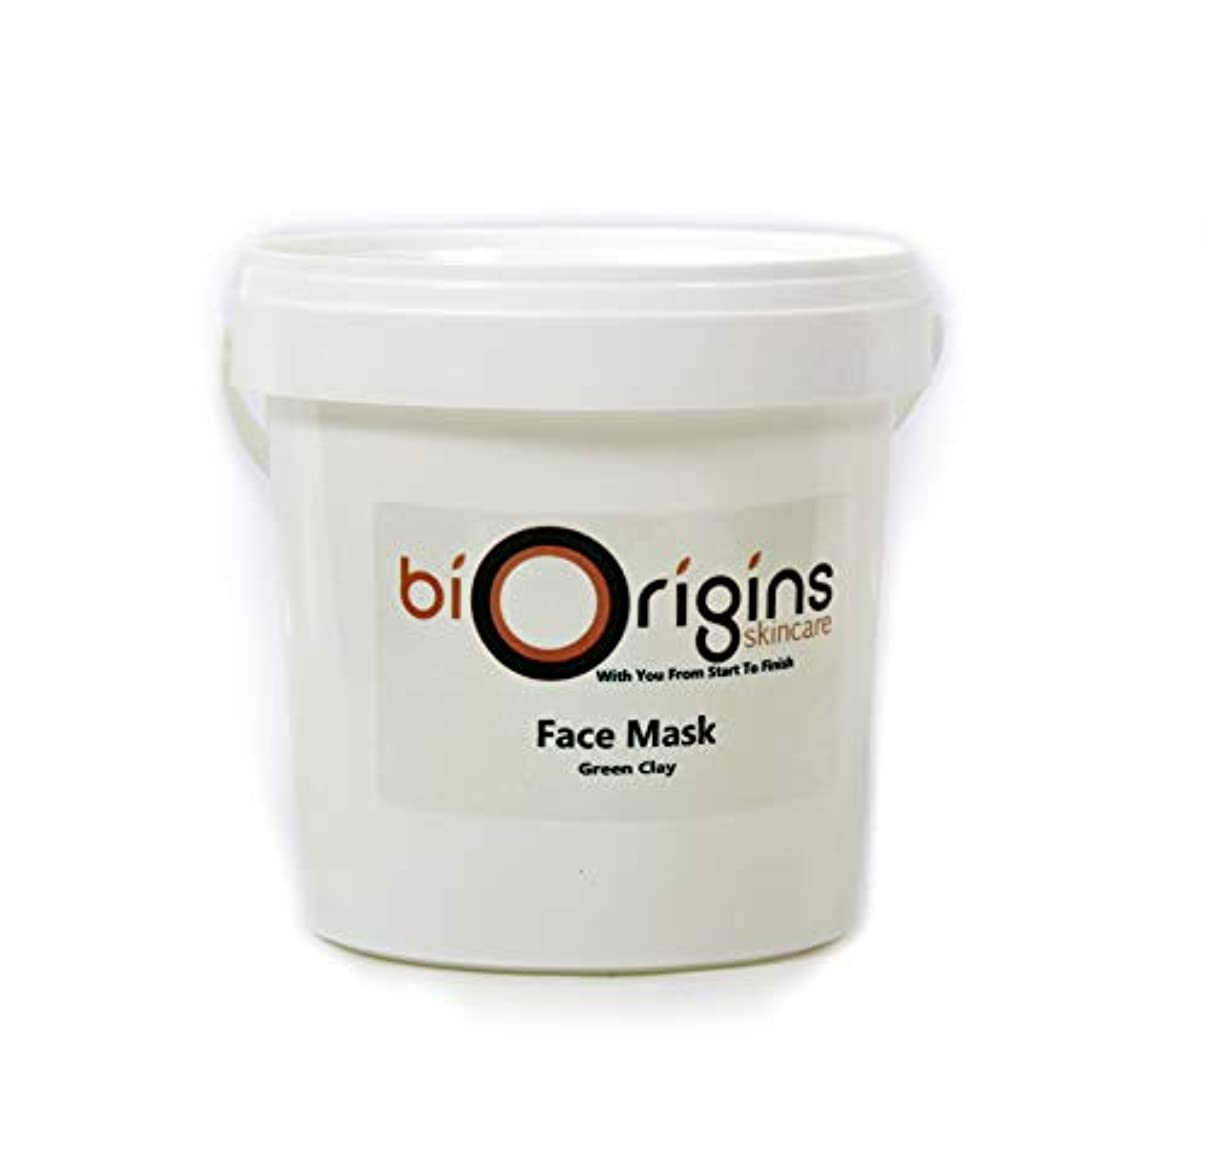 姪権威レイアウトFace Mask - Green Clay - Botanical Skincare Base - 1Kg